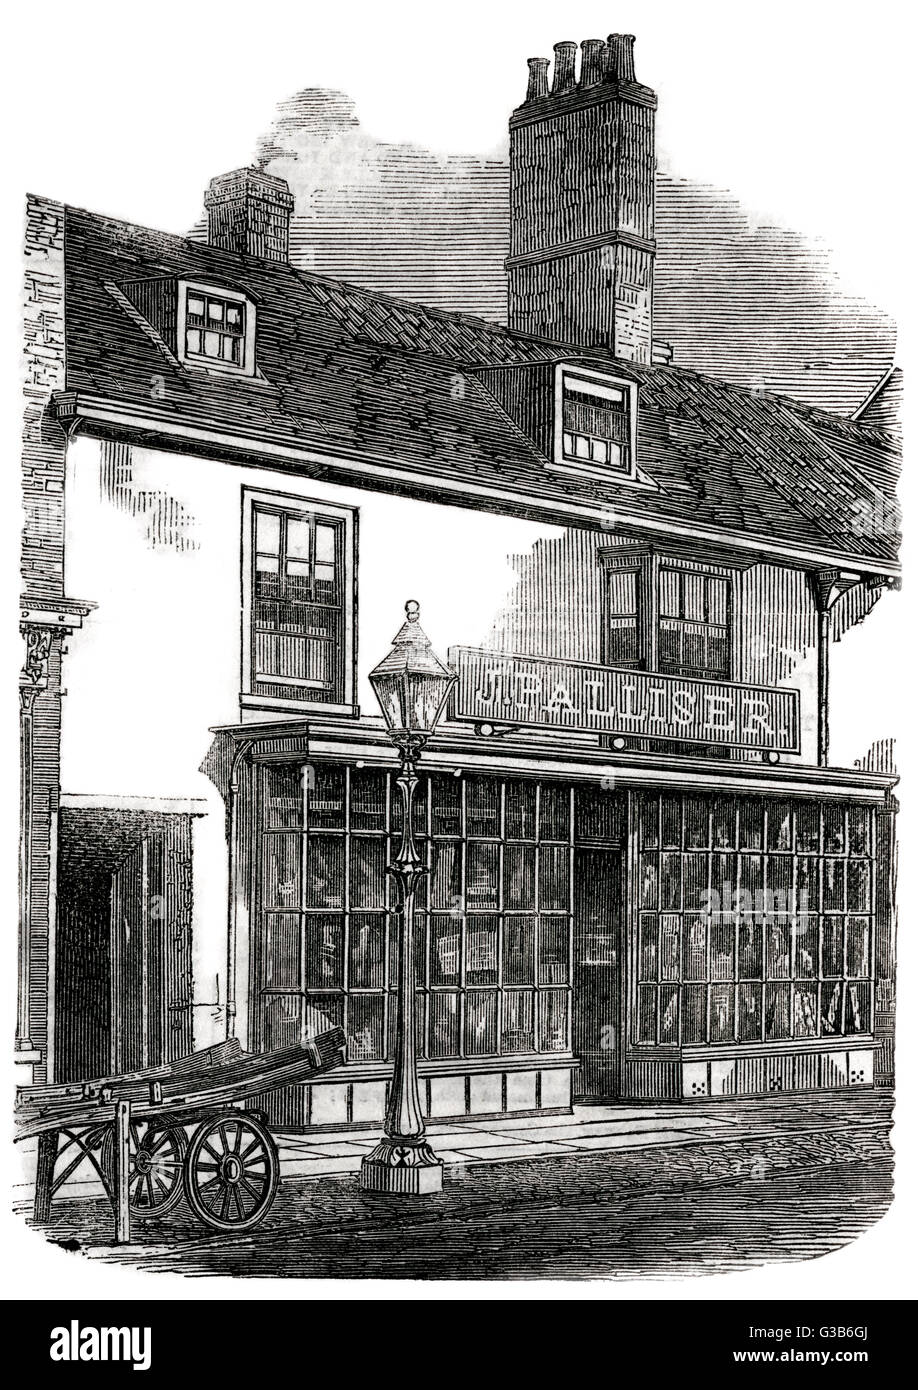 SIR JOHN FRANKLIN  His birthplace at Spilsby,  Lincolnshire.       Date: 1786 - 1847 - Stock Image